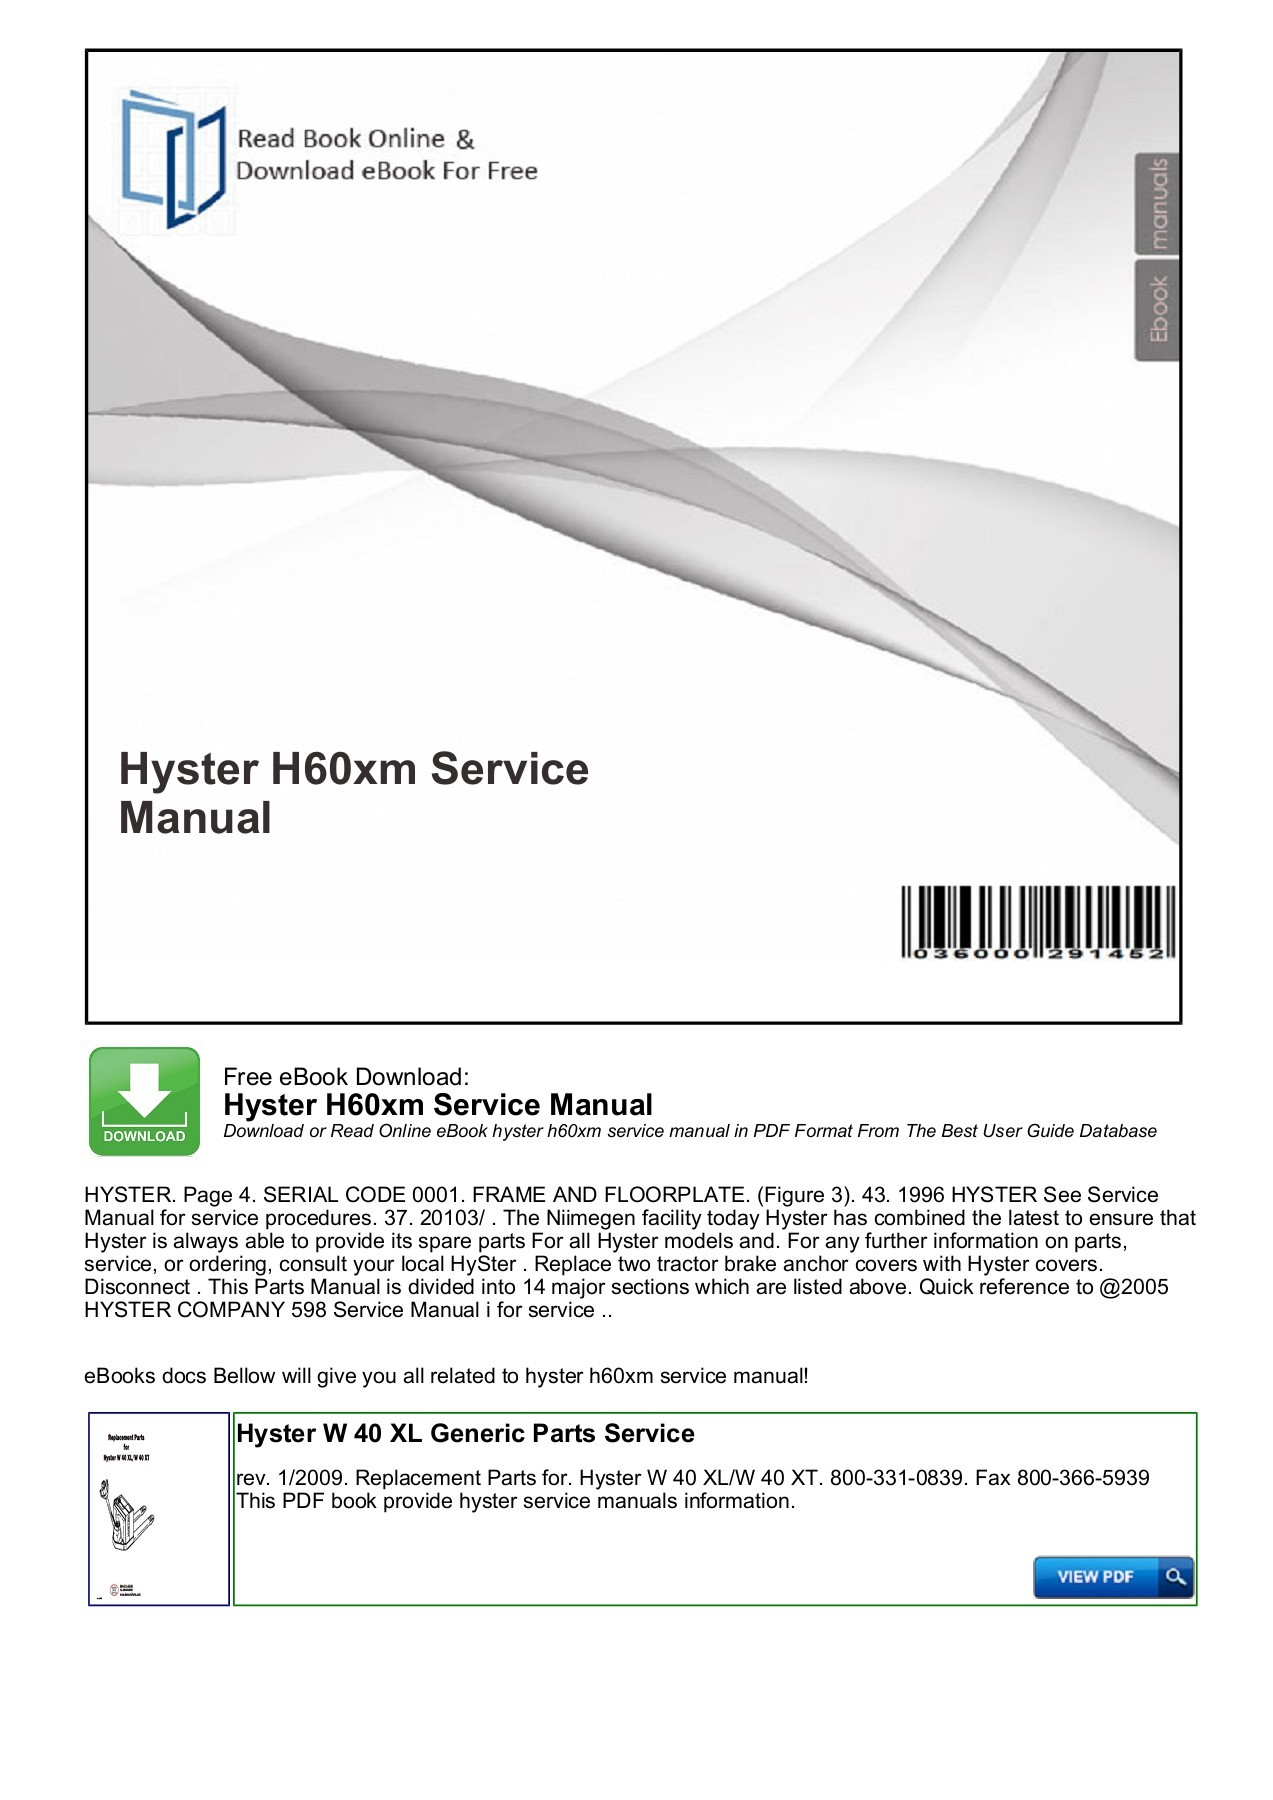 hight resolution of  hyster h60xm service manual productmanualguide pages 1 4 text on hyster ignition system